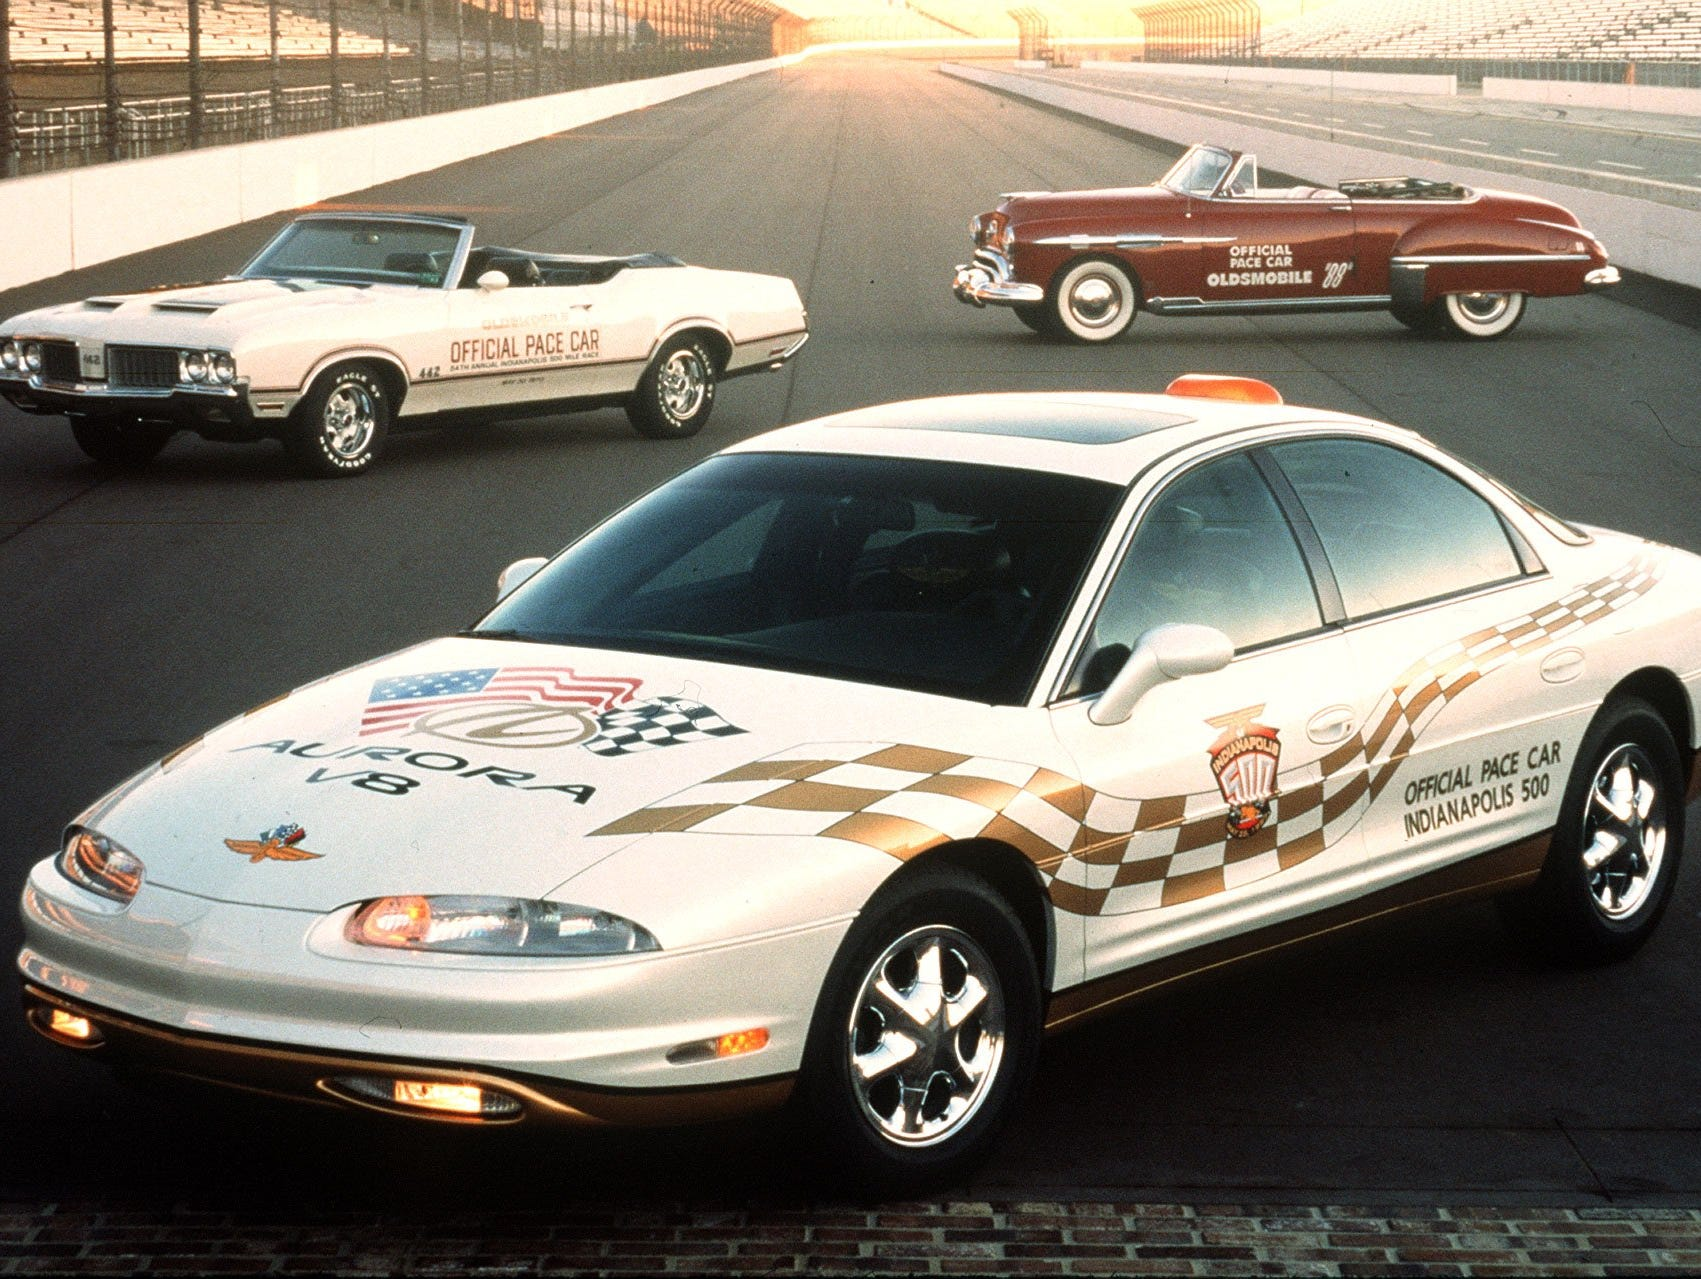 Oldsmobile Pace Cars past and present. The Aurora V8, front, is the latest Official Pace Car for the Indianapolis 500.